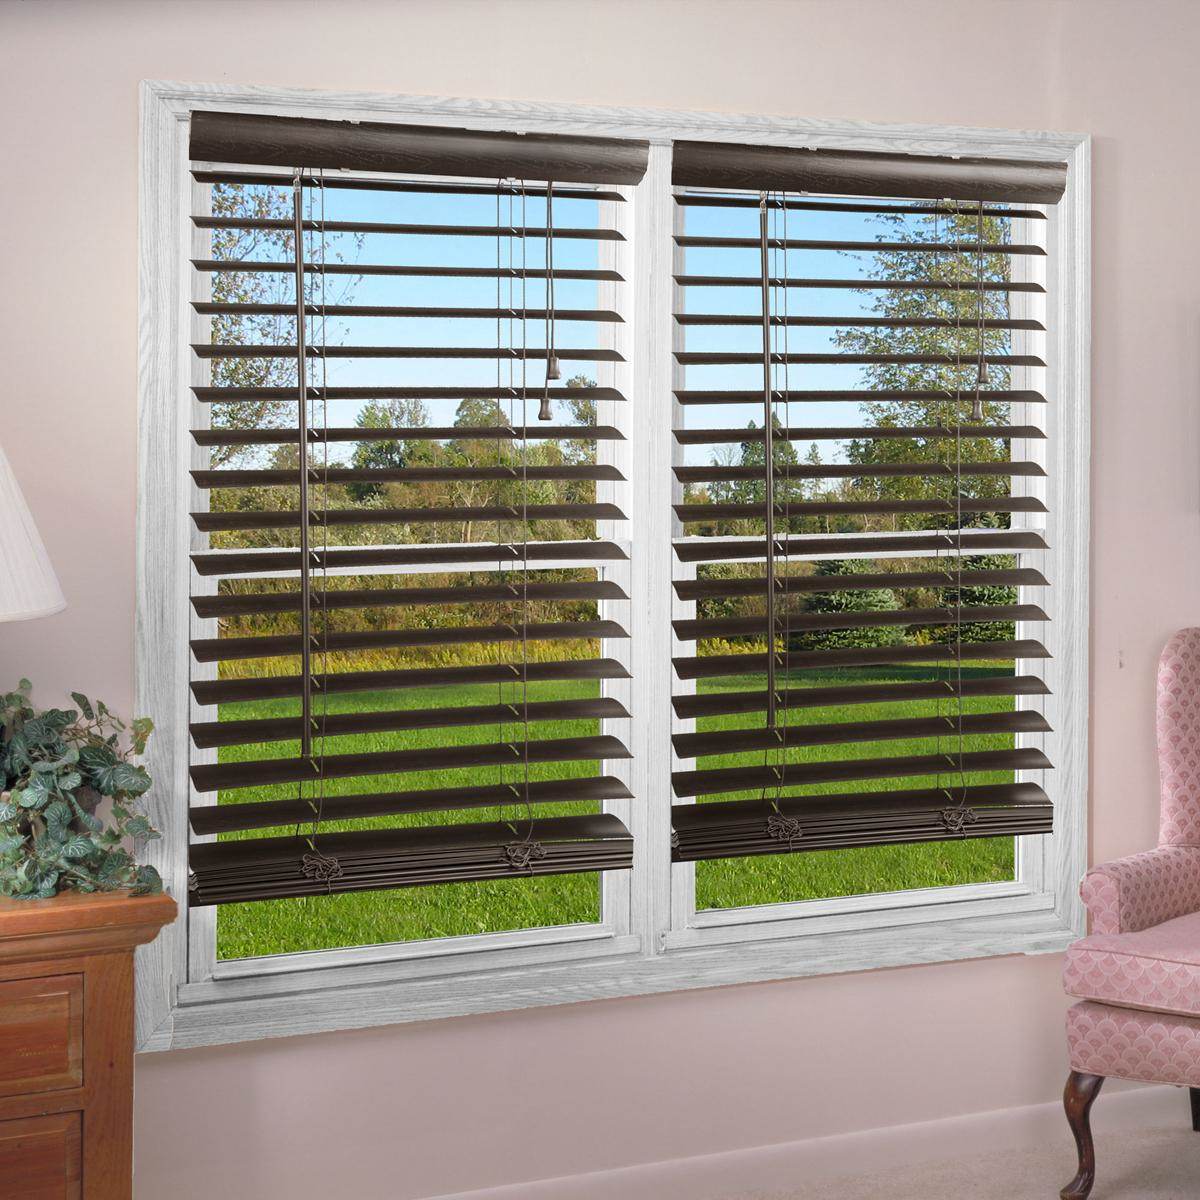 Excellent Menards Window Blinds for Best Window Blind Ideas: Window Blinds At Menards | Menards Window Blinds | Nearest Menards